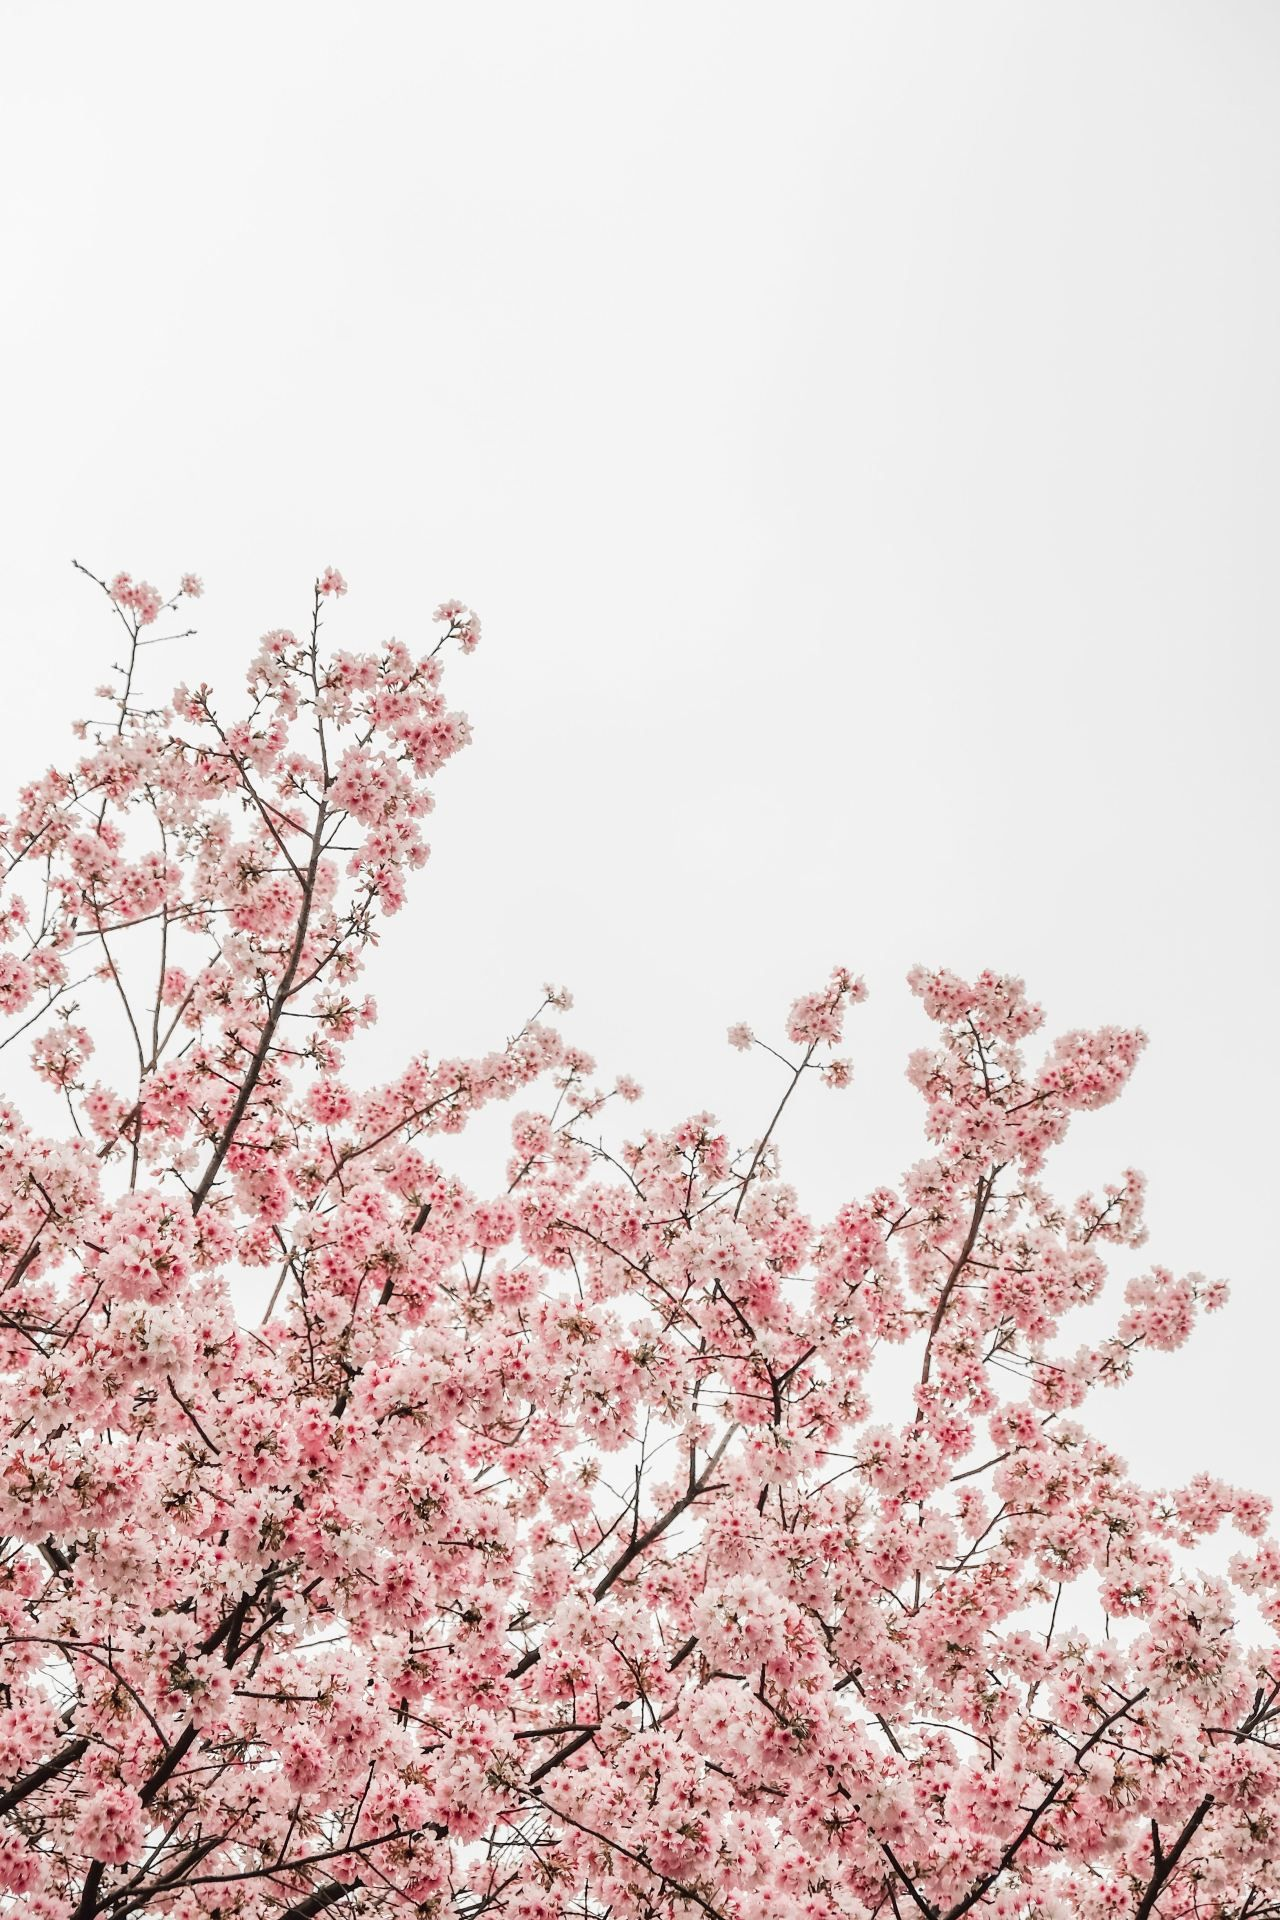 The Best Hair Oils For Natural Hair Tothecurlmarket Blossom Trees Flower Aesthetic Cherry Blossom Pictures